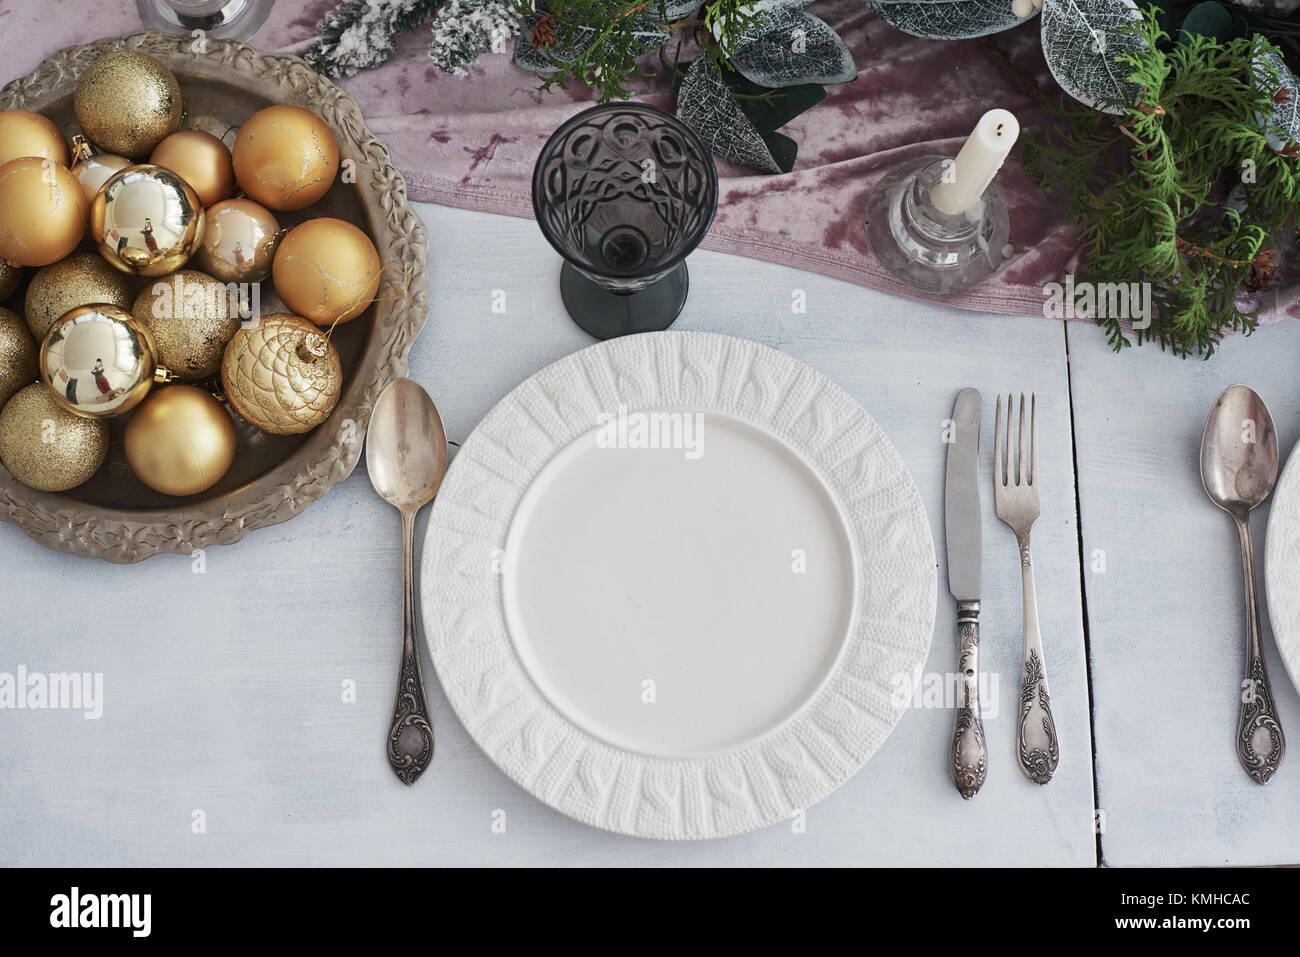 Table served for Christmas dinner in living room, top view. - Stock Image